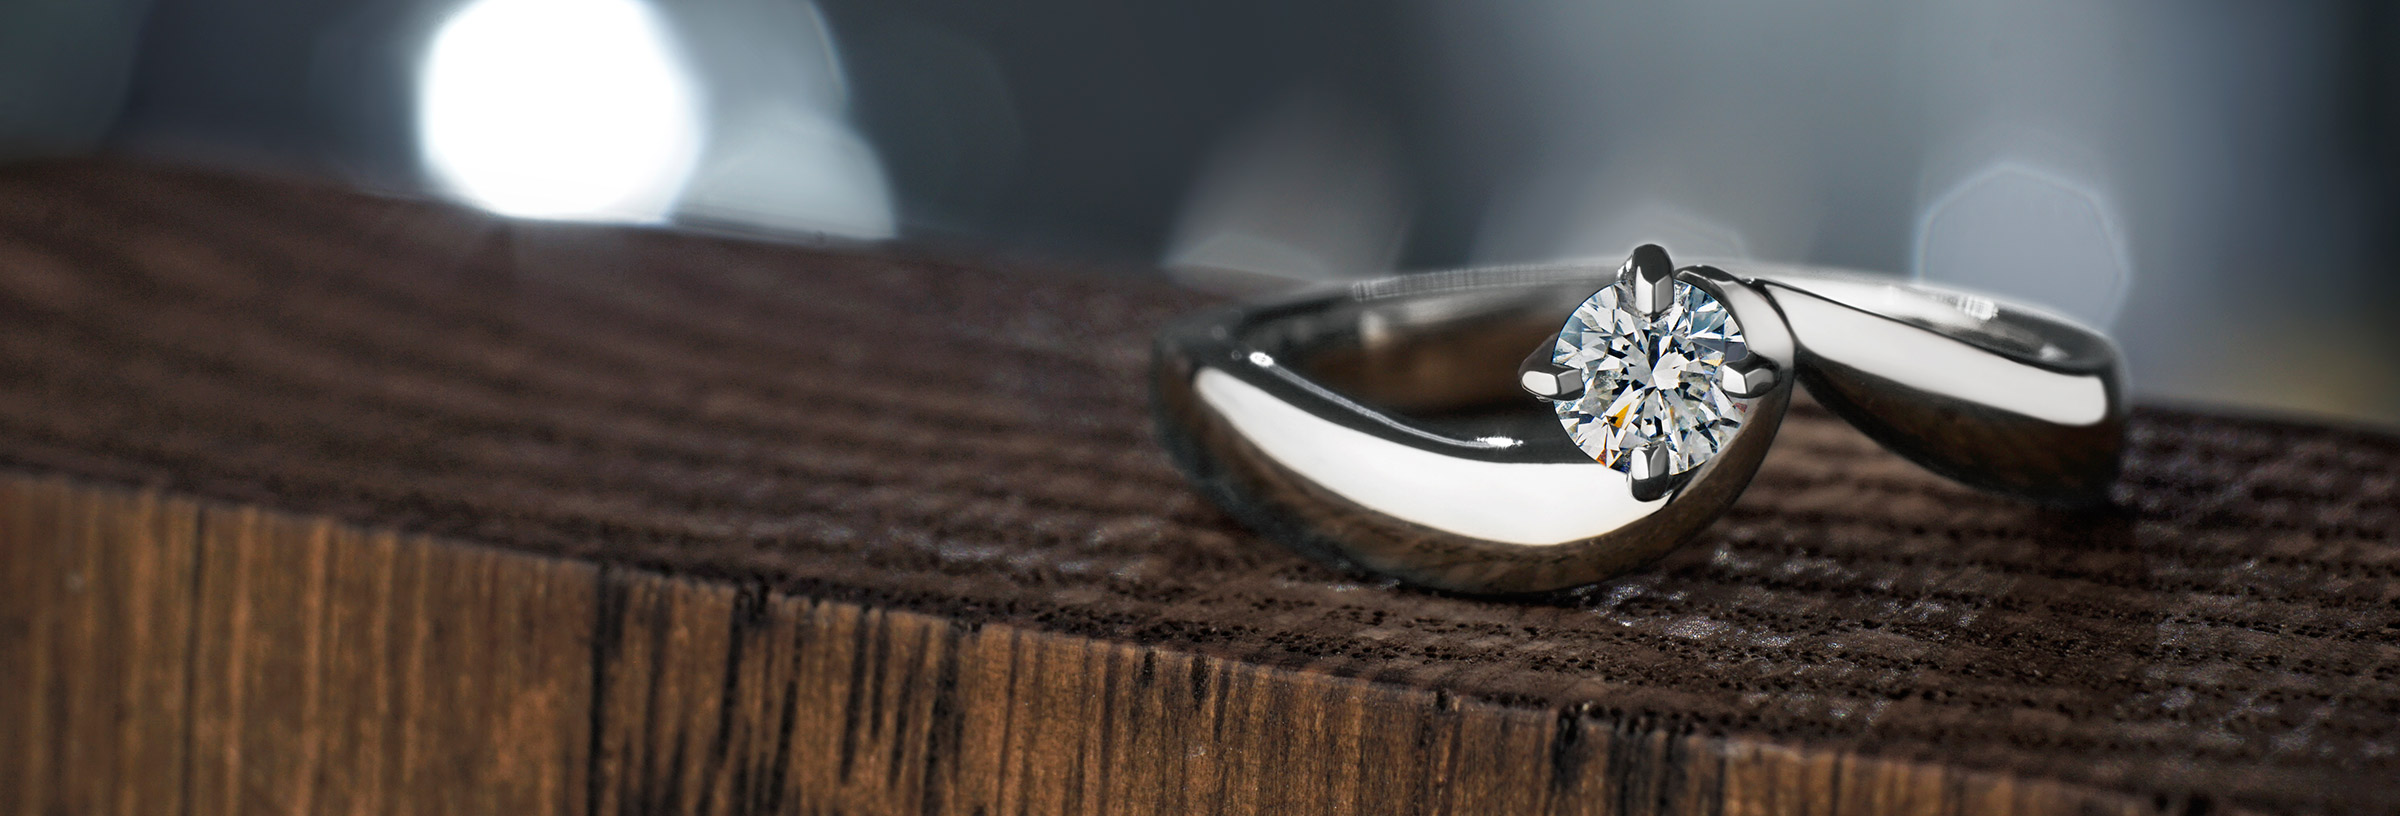 twist-style-platinum-and-diamond-engagement-ring